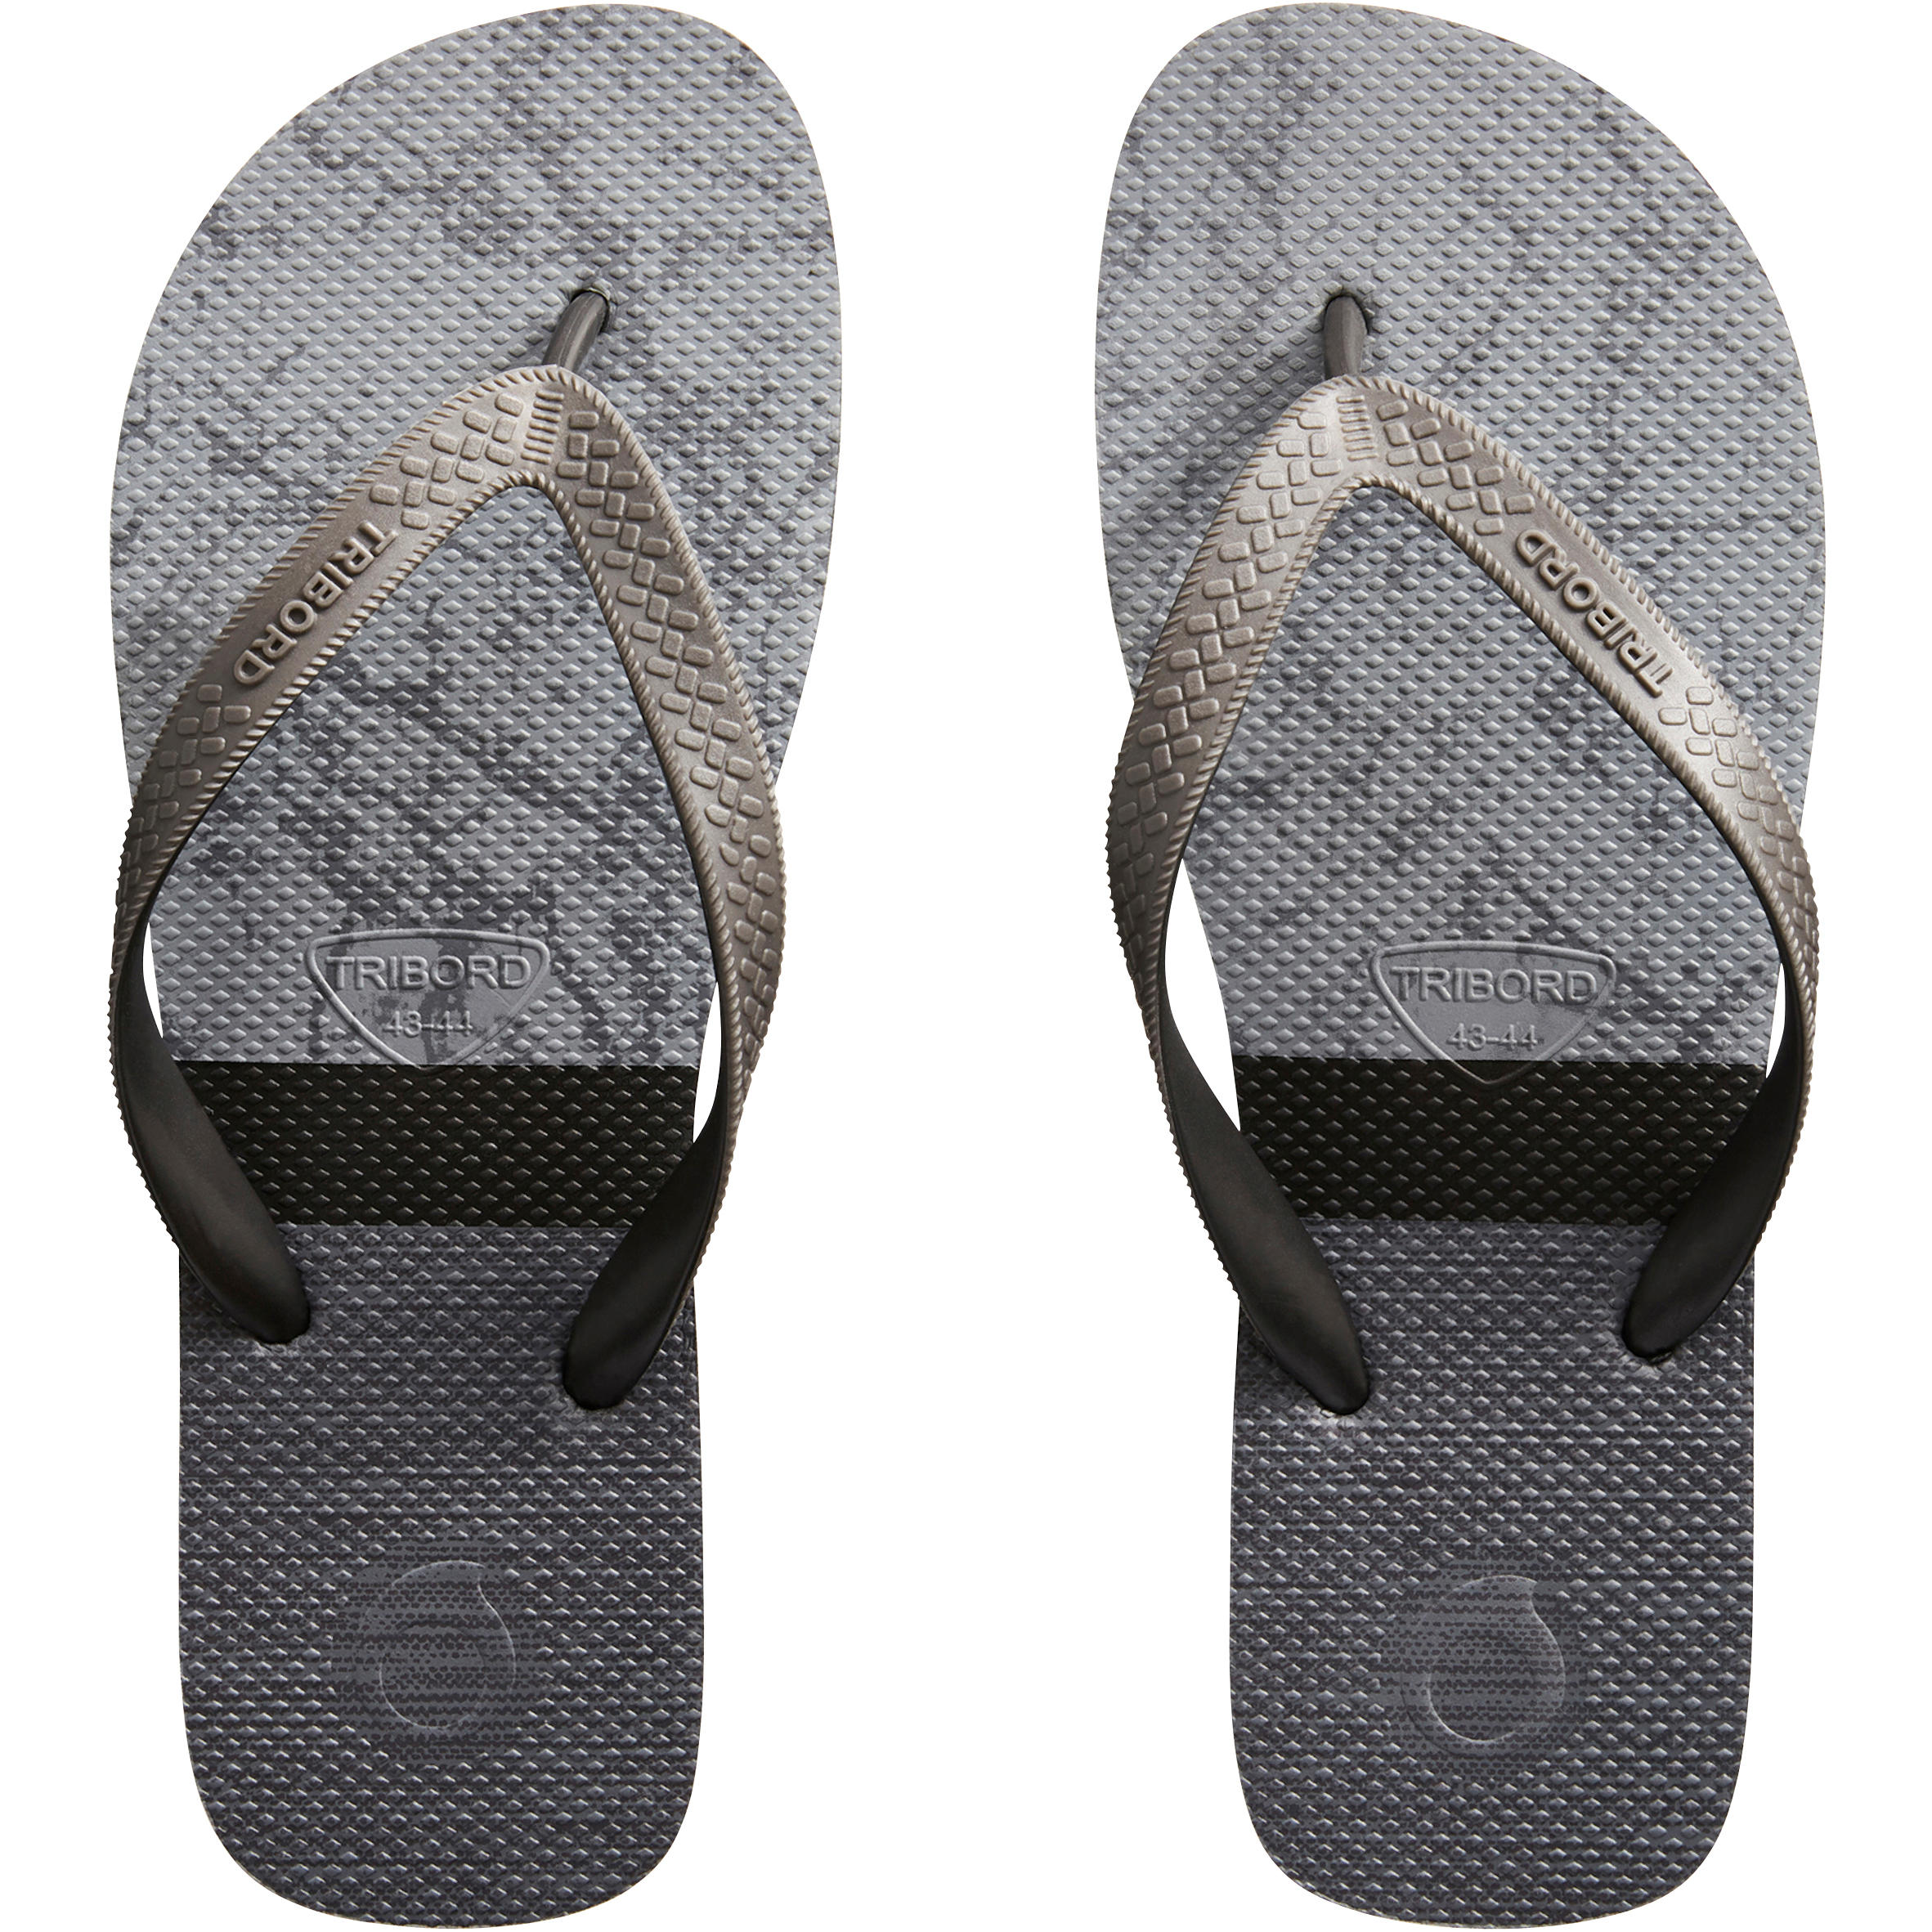 TO 500 M Mar Men's Flip-Flops - Black